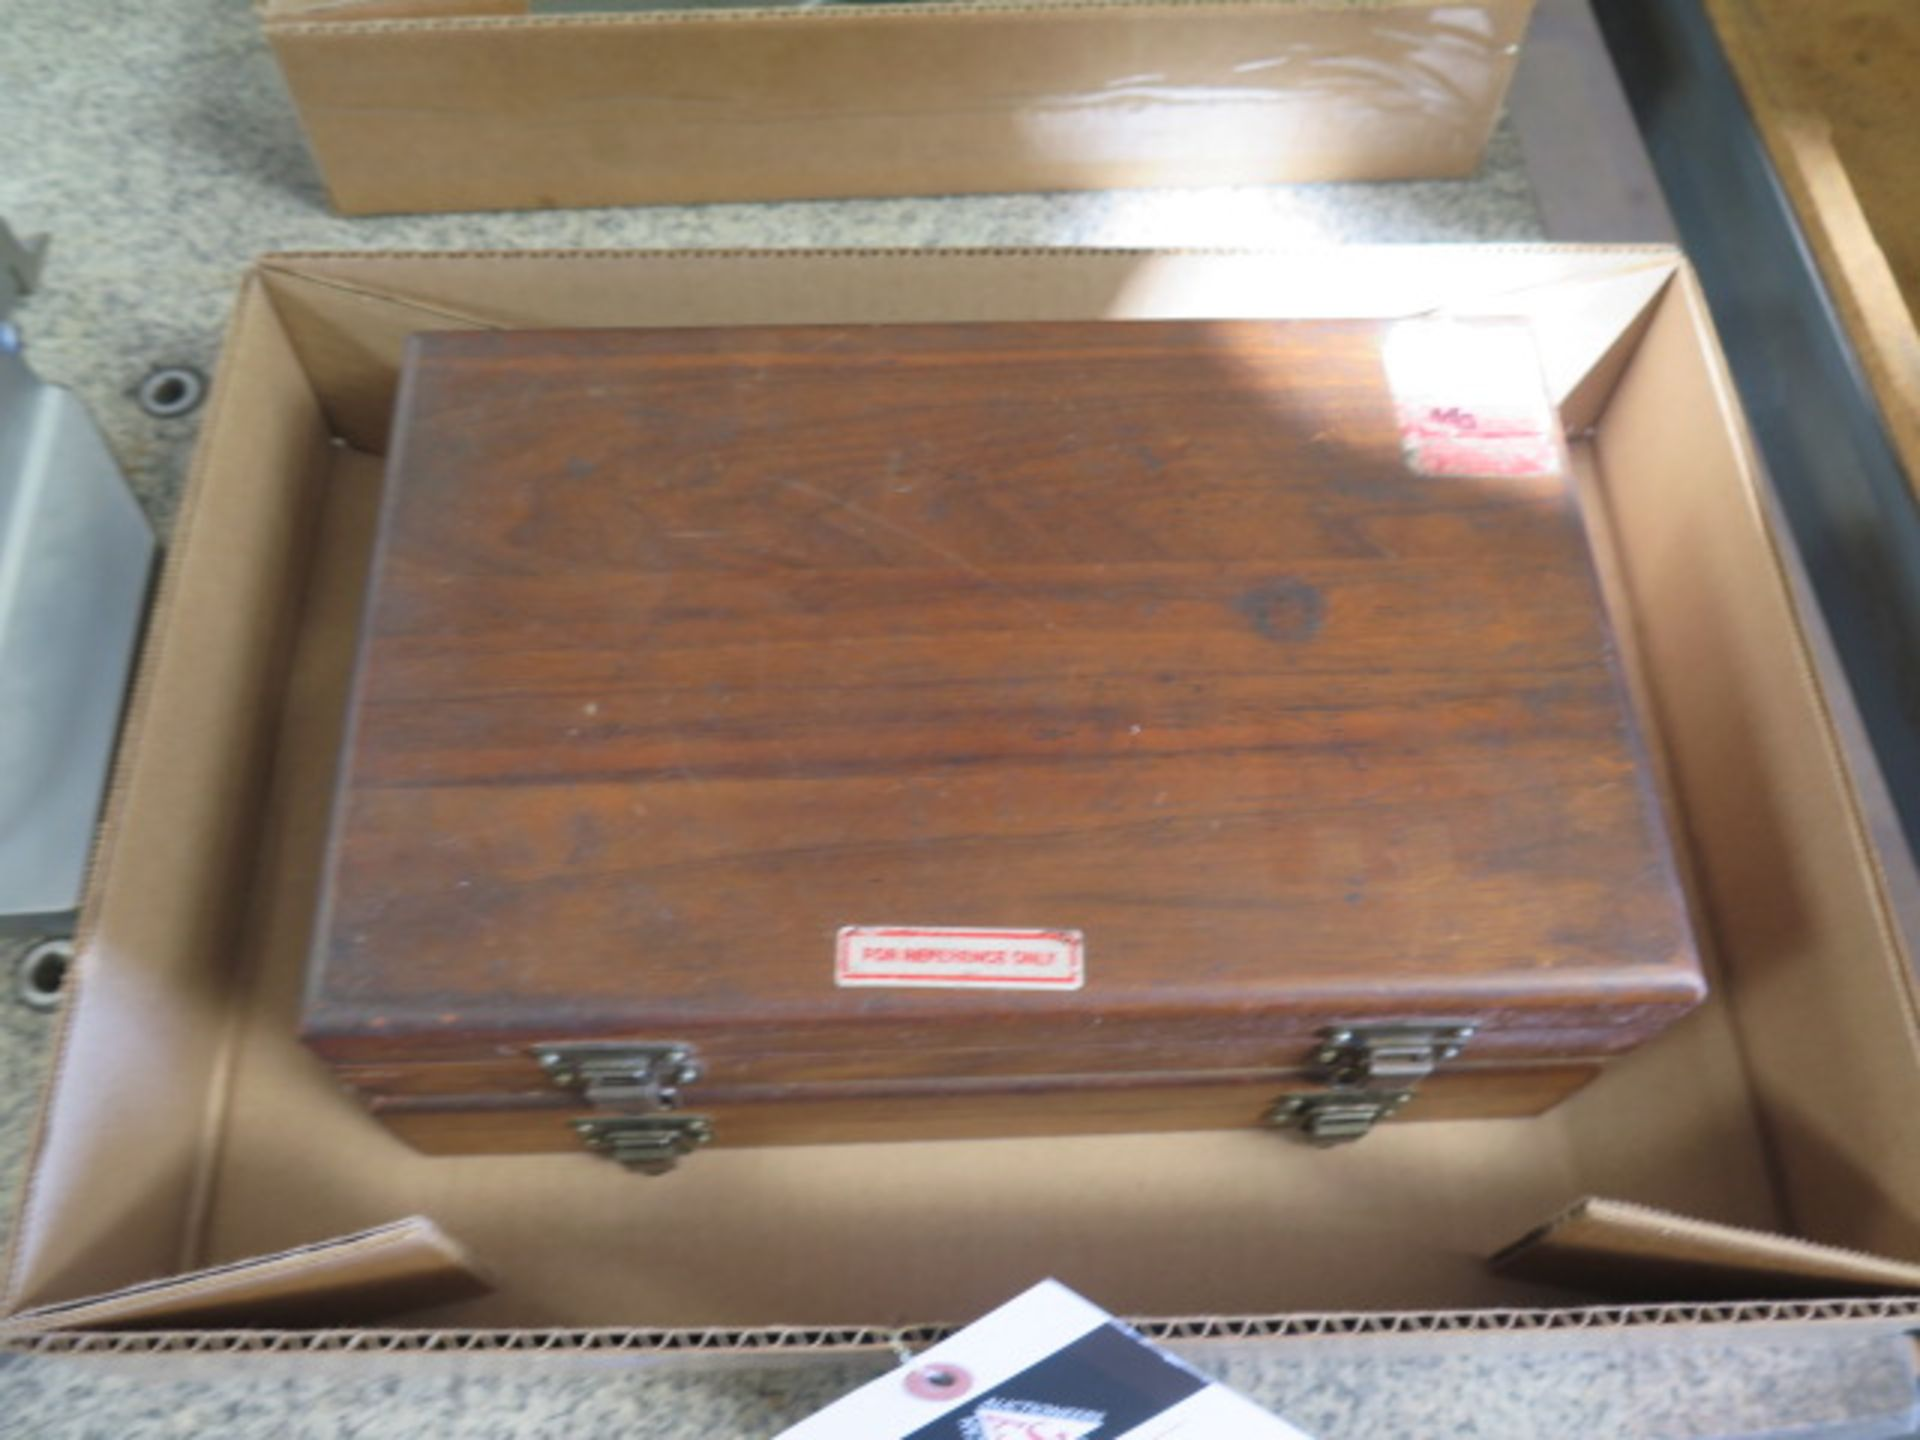 Gage Block Sets (2) (SOLD AS-IS - NO WARRANTY) - Image 2 of 4